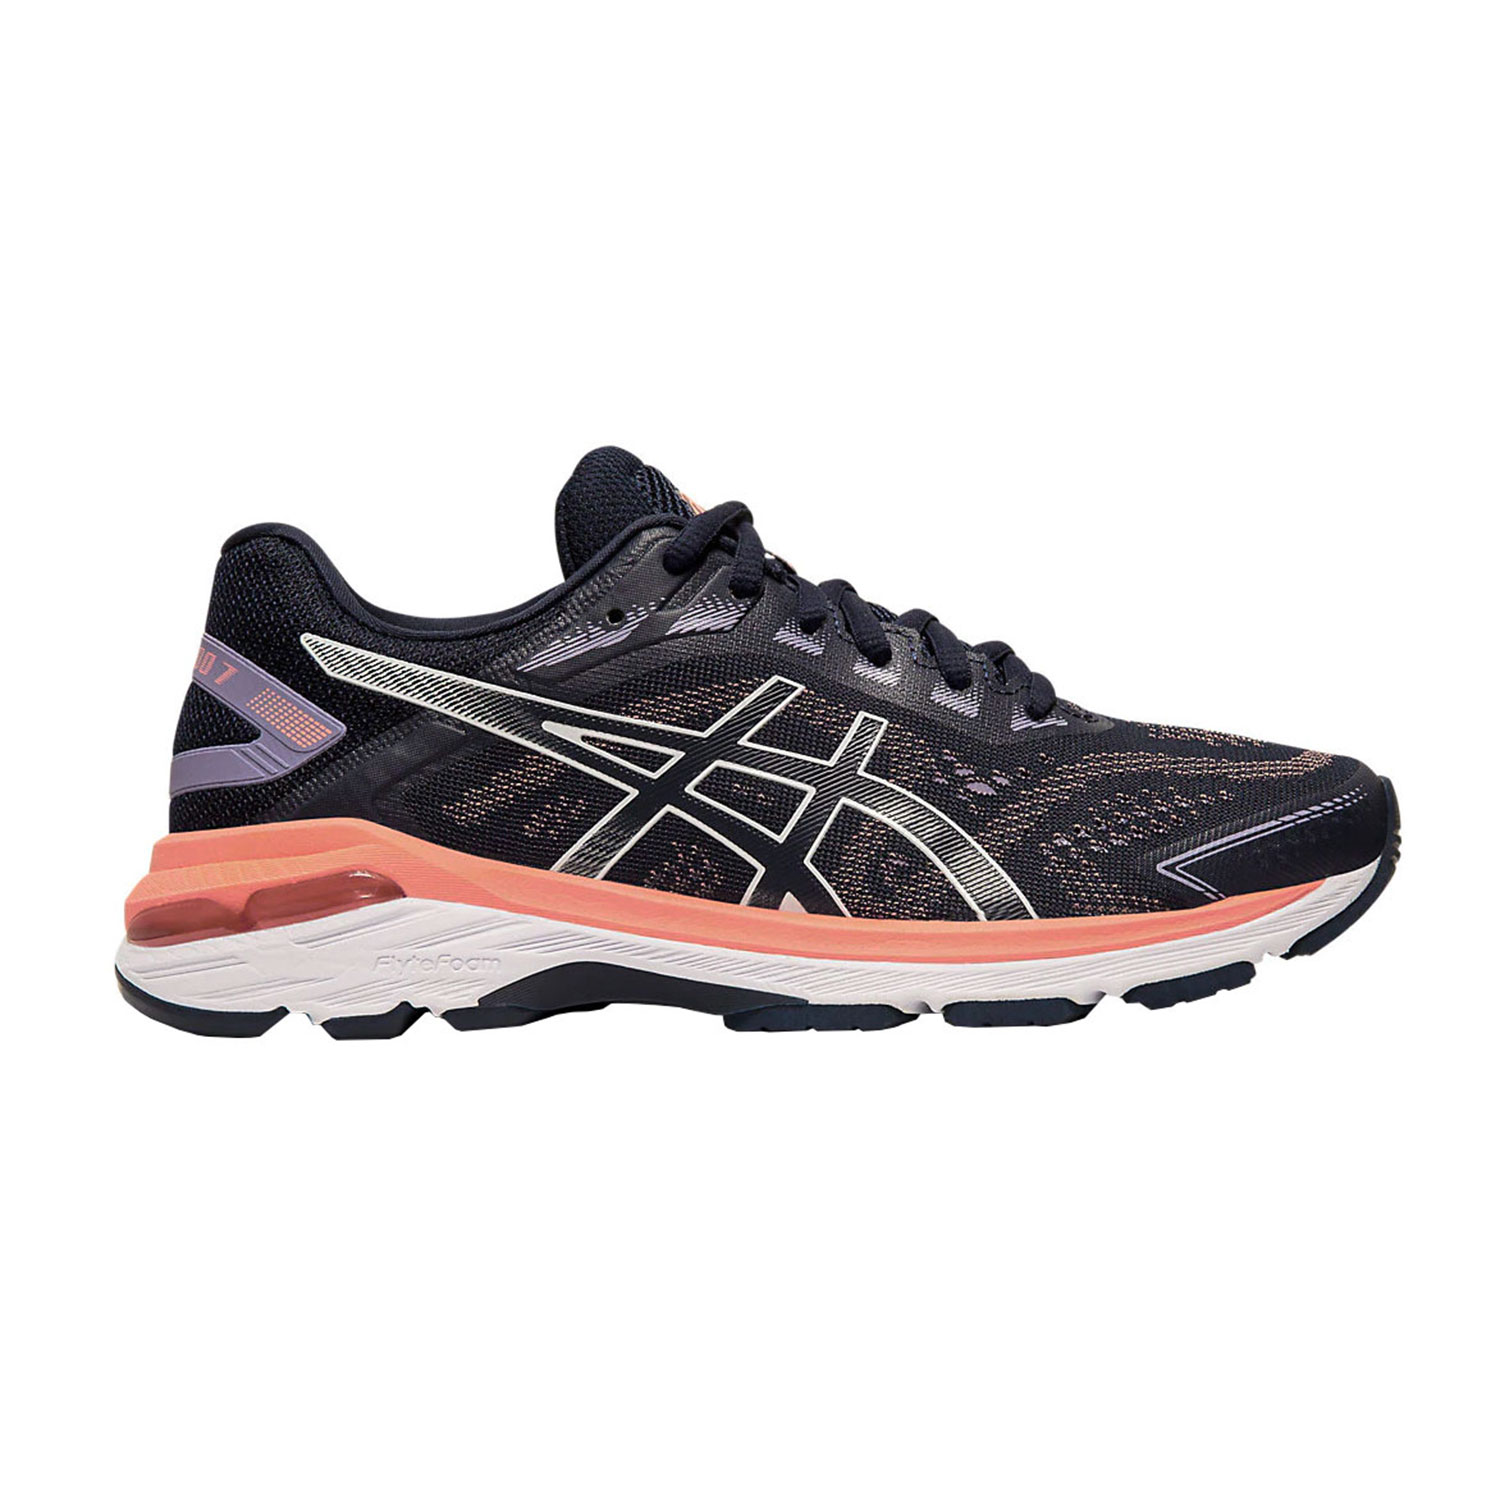 Perversione acuto Consecutivo  asics gt 2000 donna, OFF 72%,Best Deals Online.,